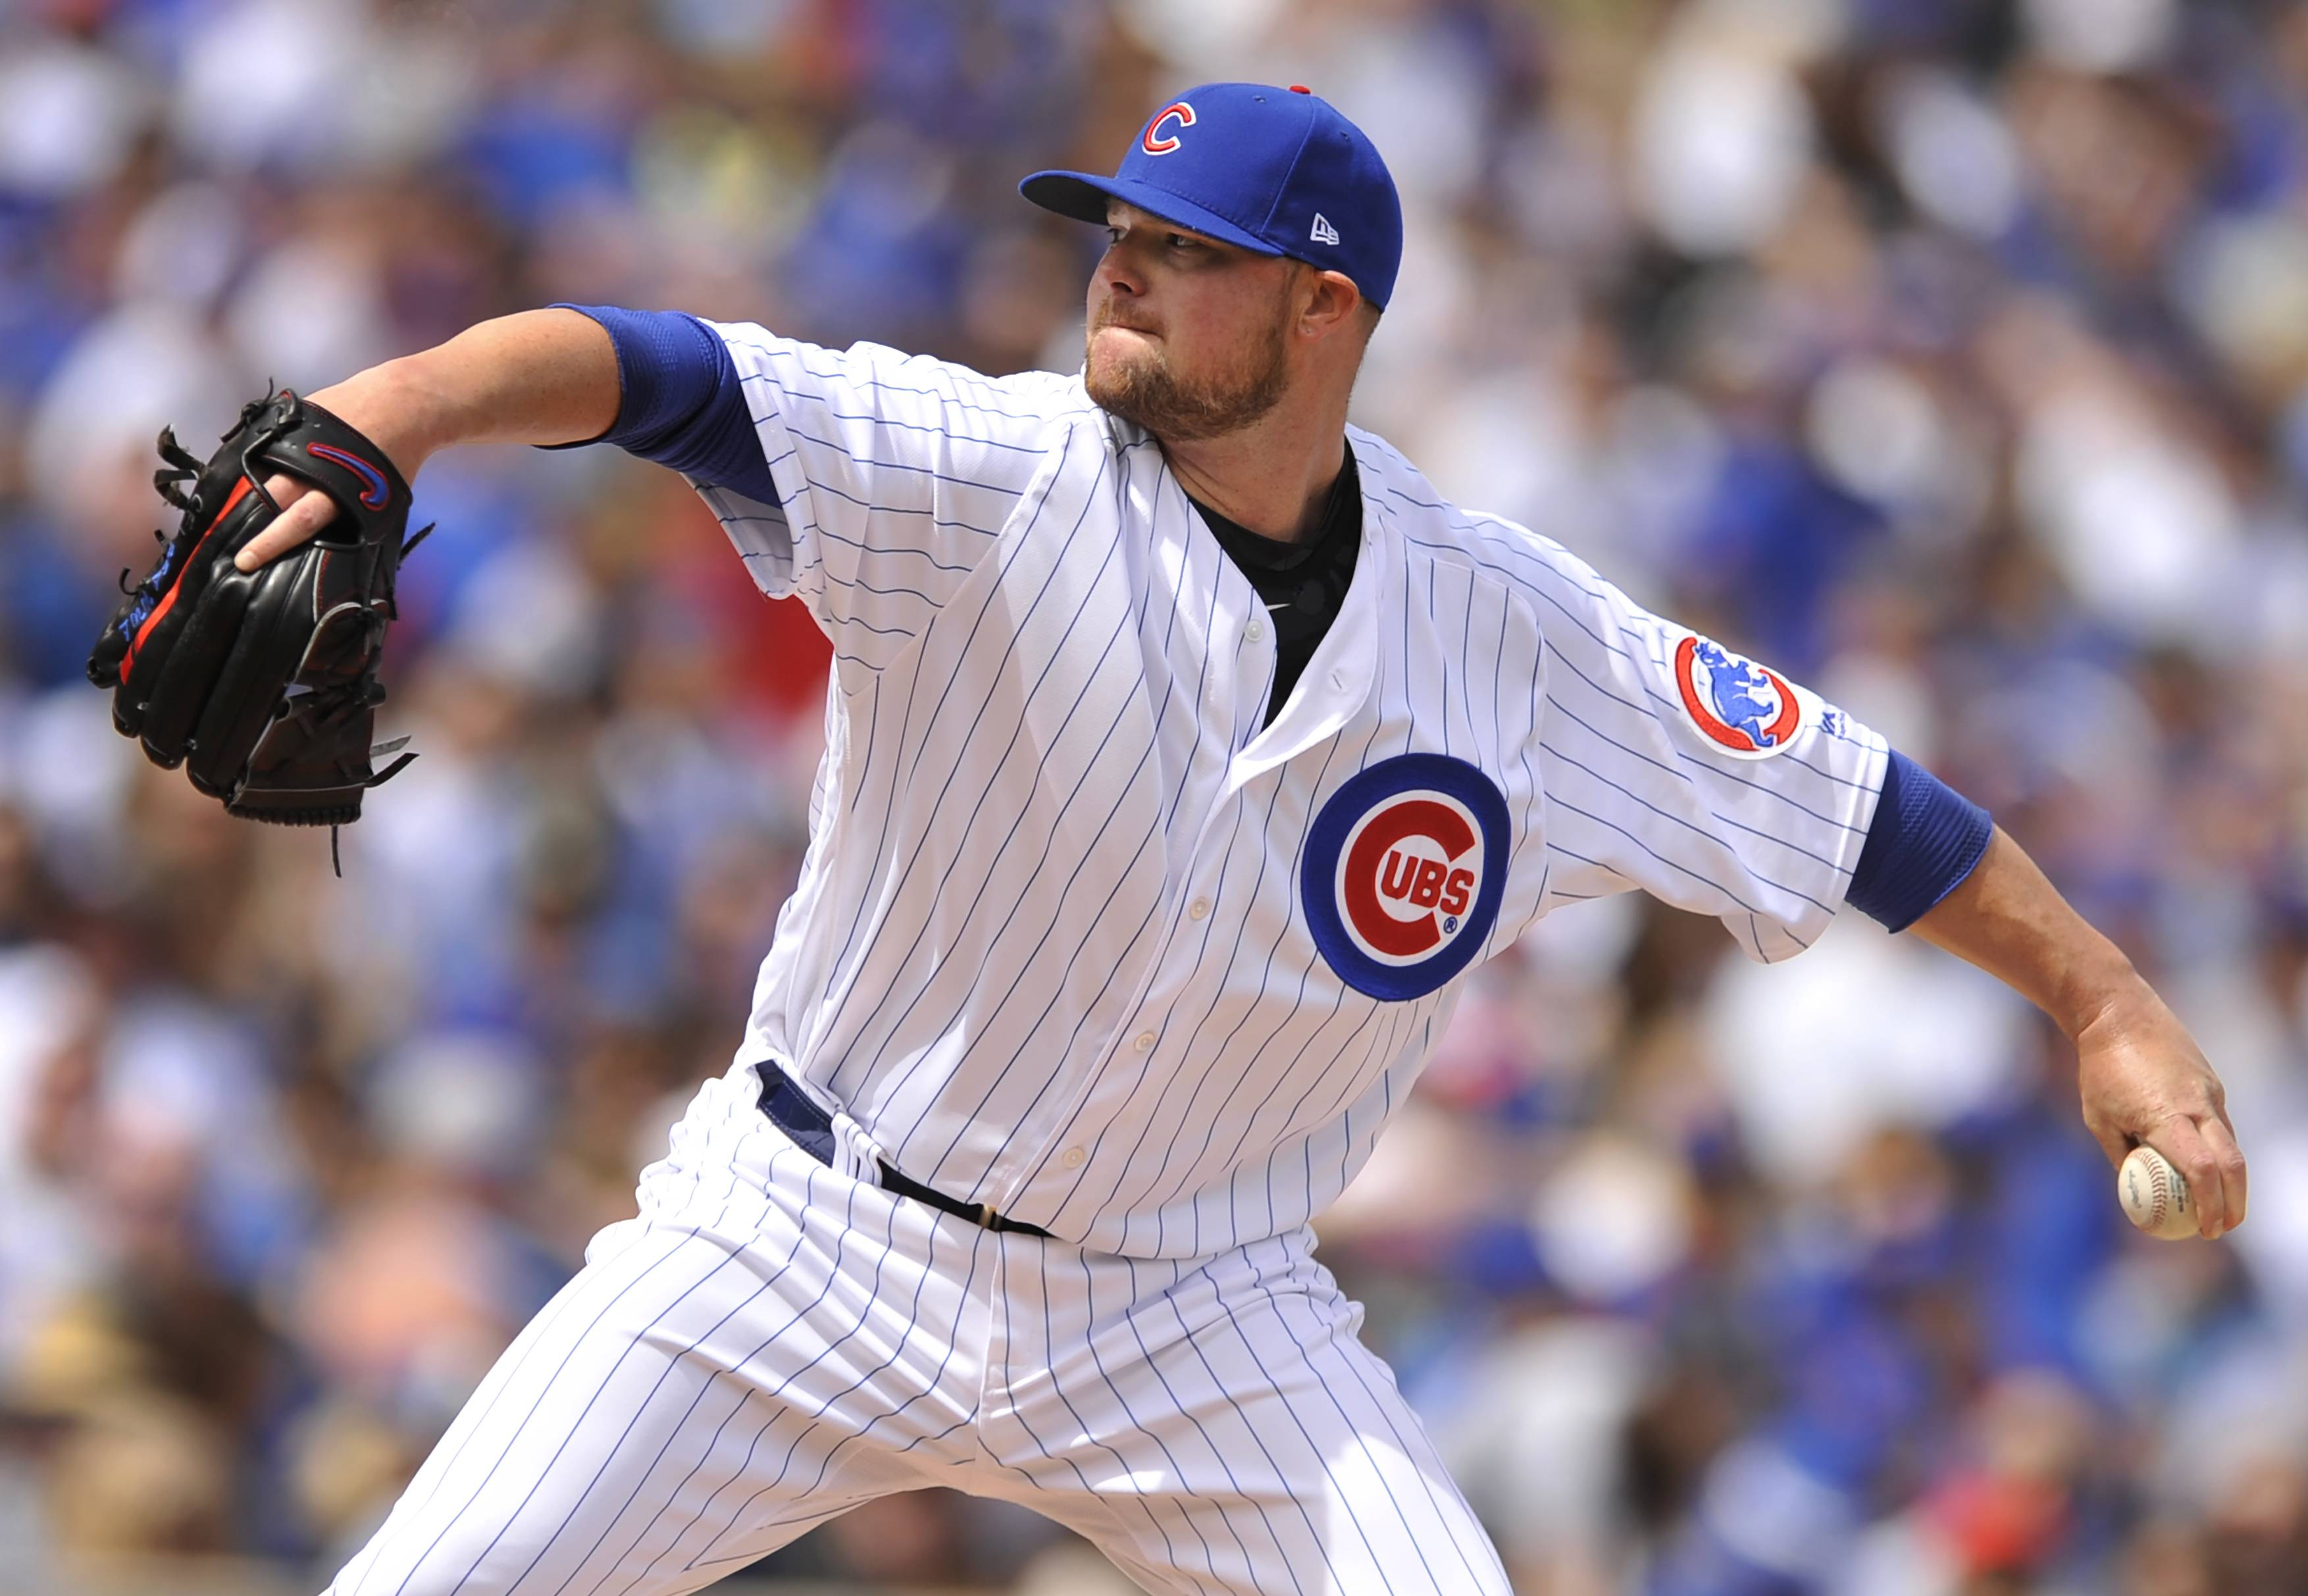 Chicago Cubs manager Joe Maddon has juggled the pitching rotation, flip-flopping Jon Lester and Jake Arrieta for this weekend's series at Cincinnati.